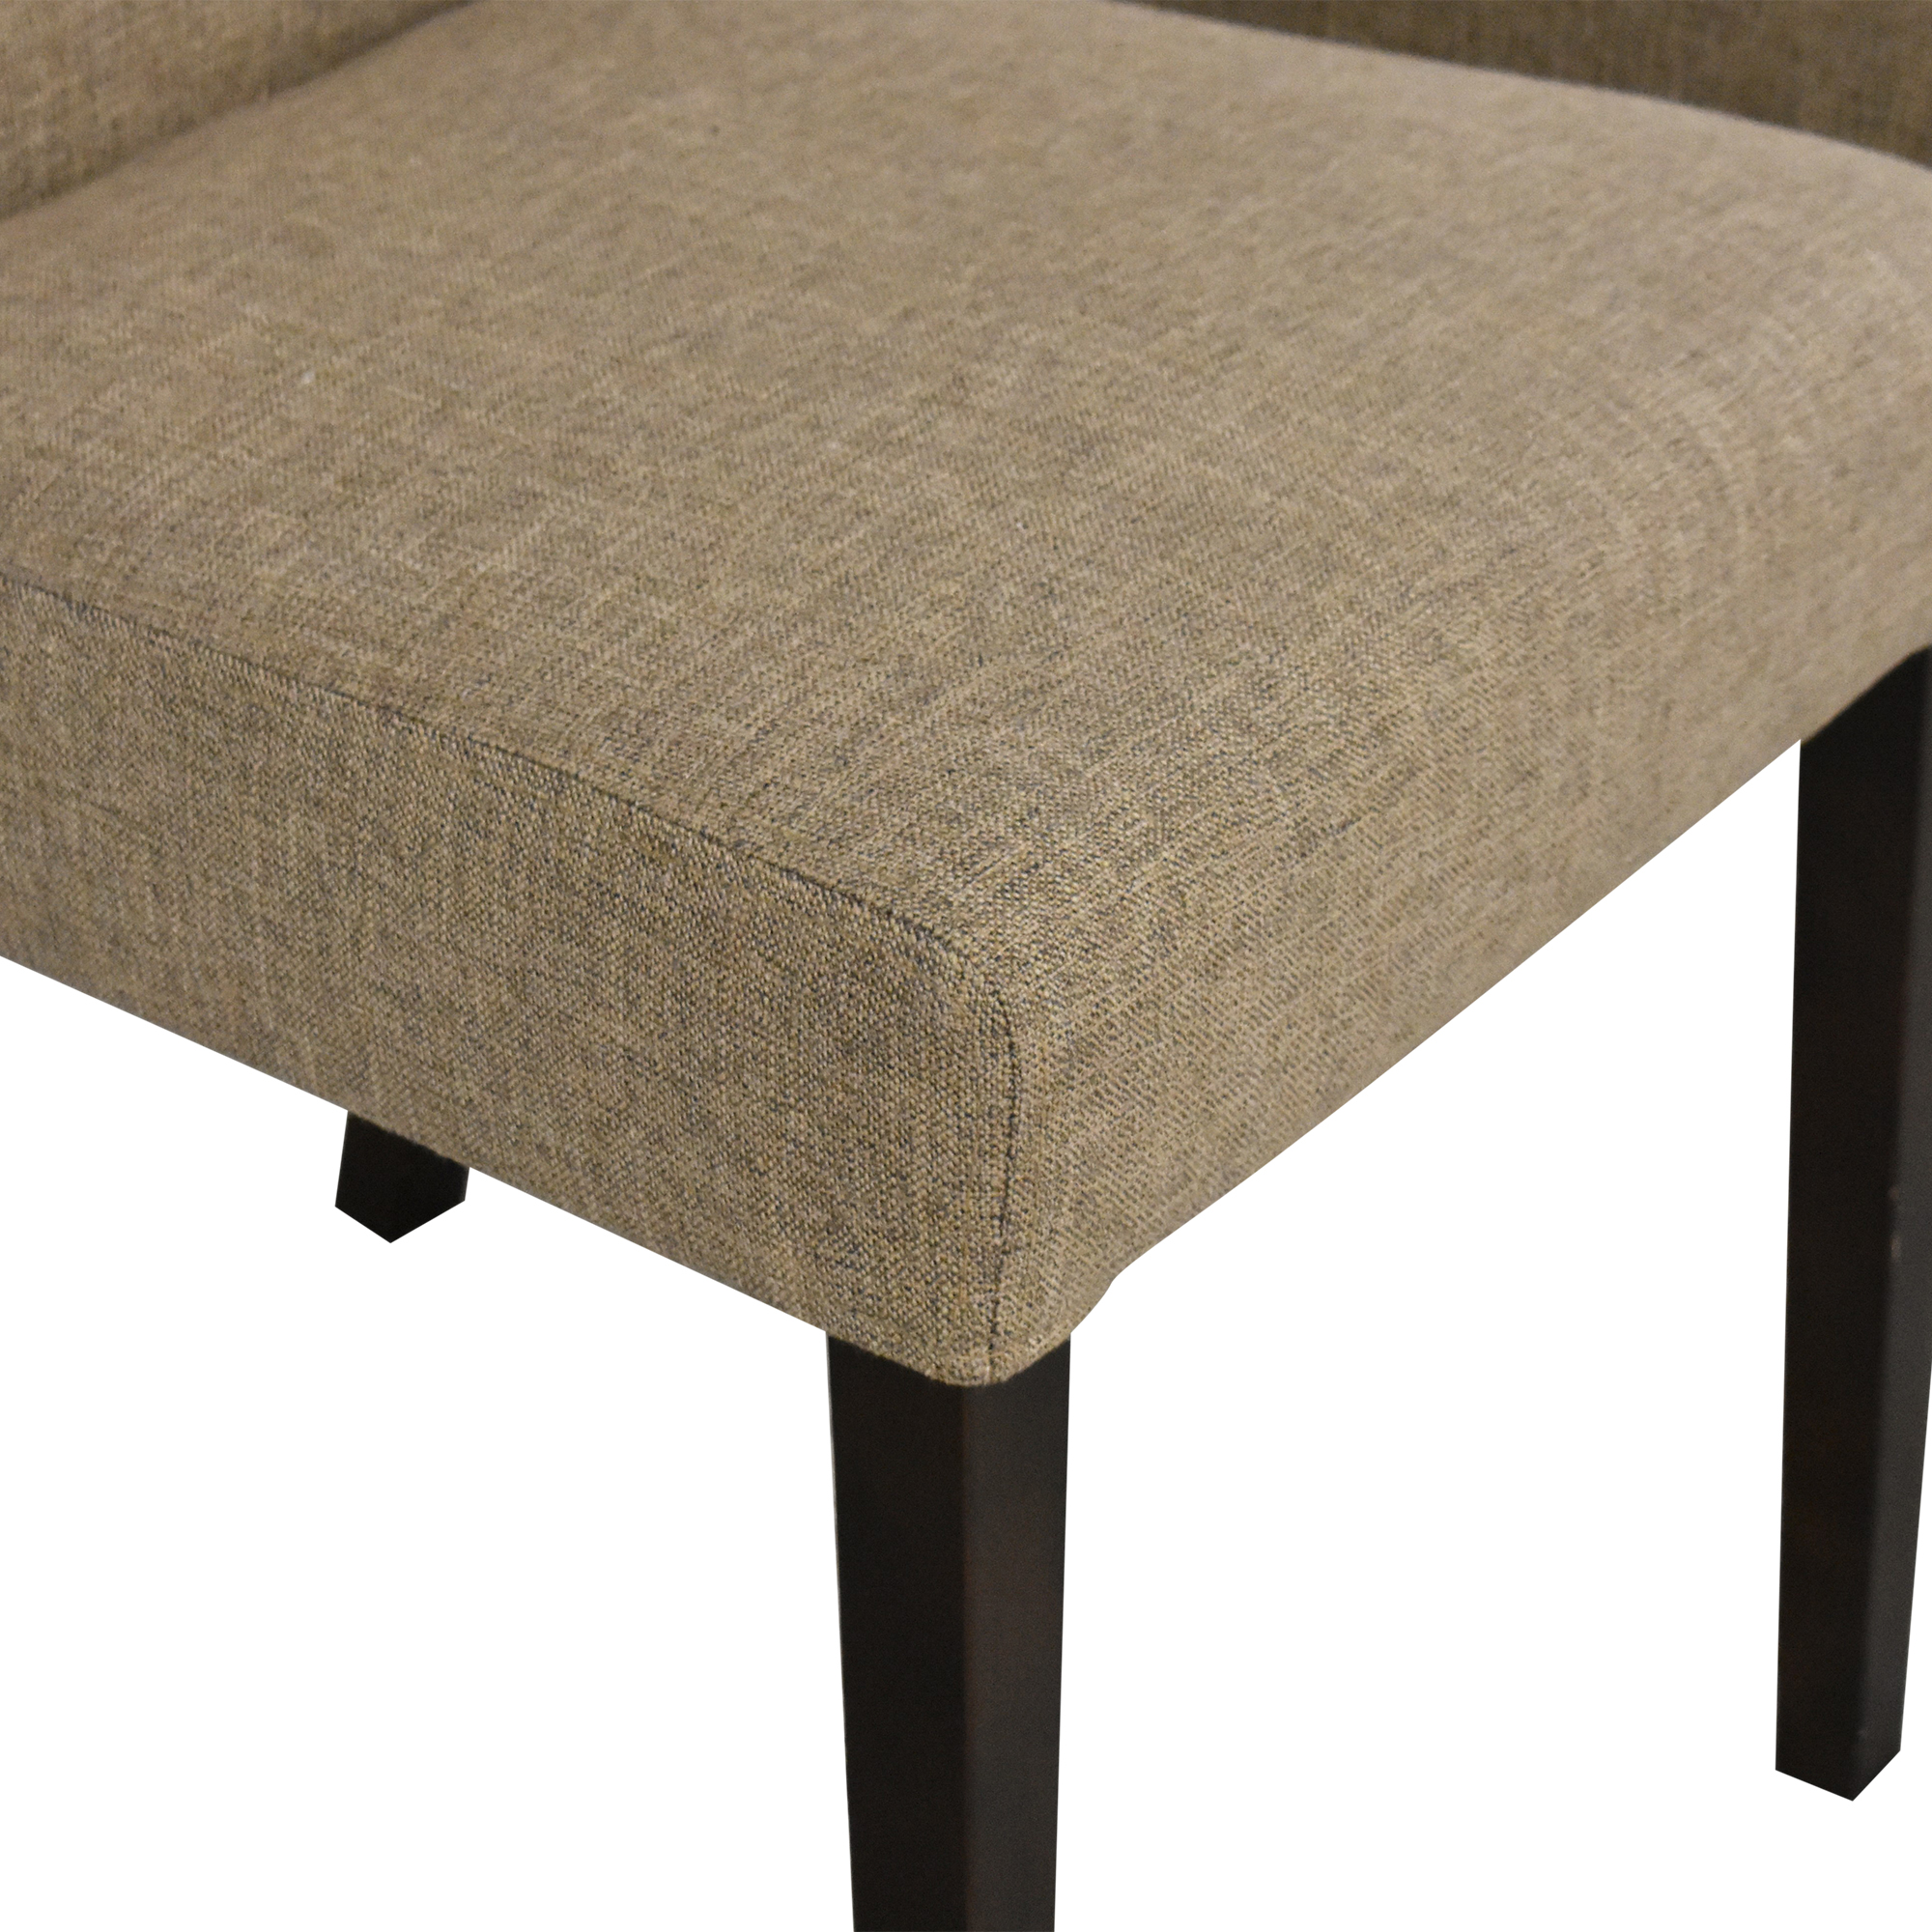 Crate & Barrel Crate & Barrel Lowe Dining Chairs used